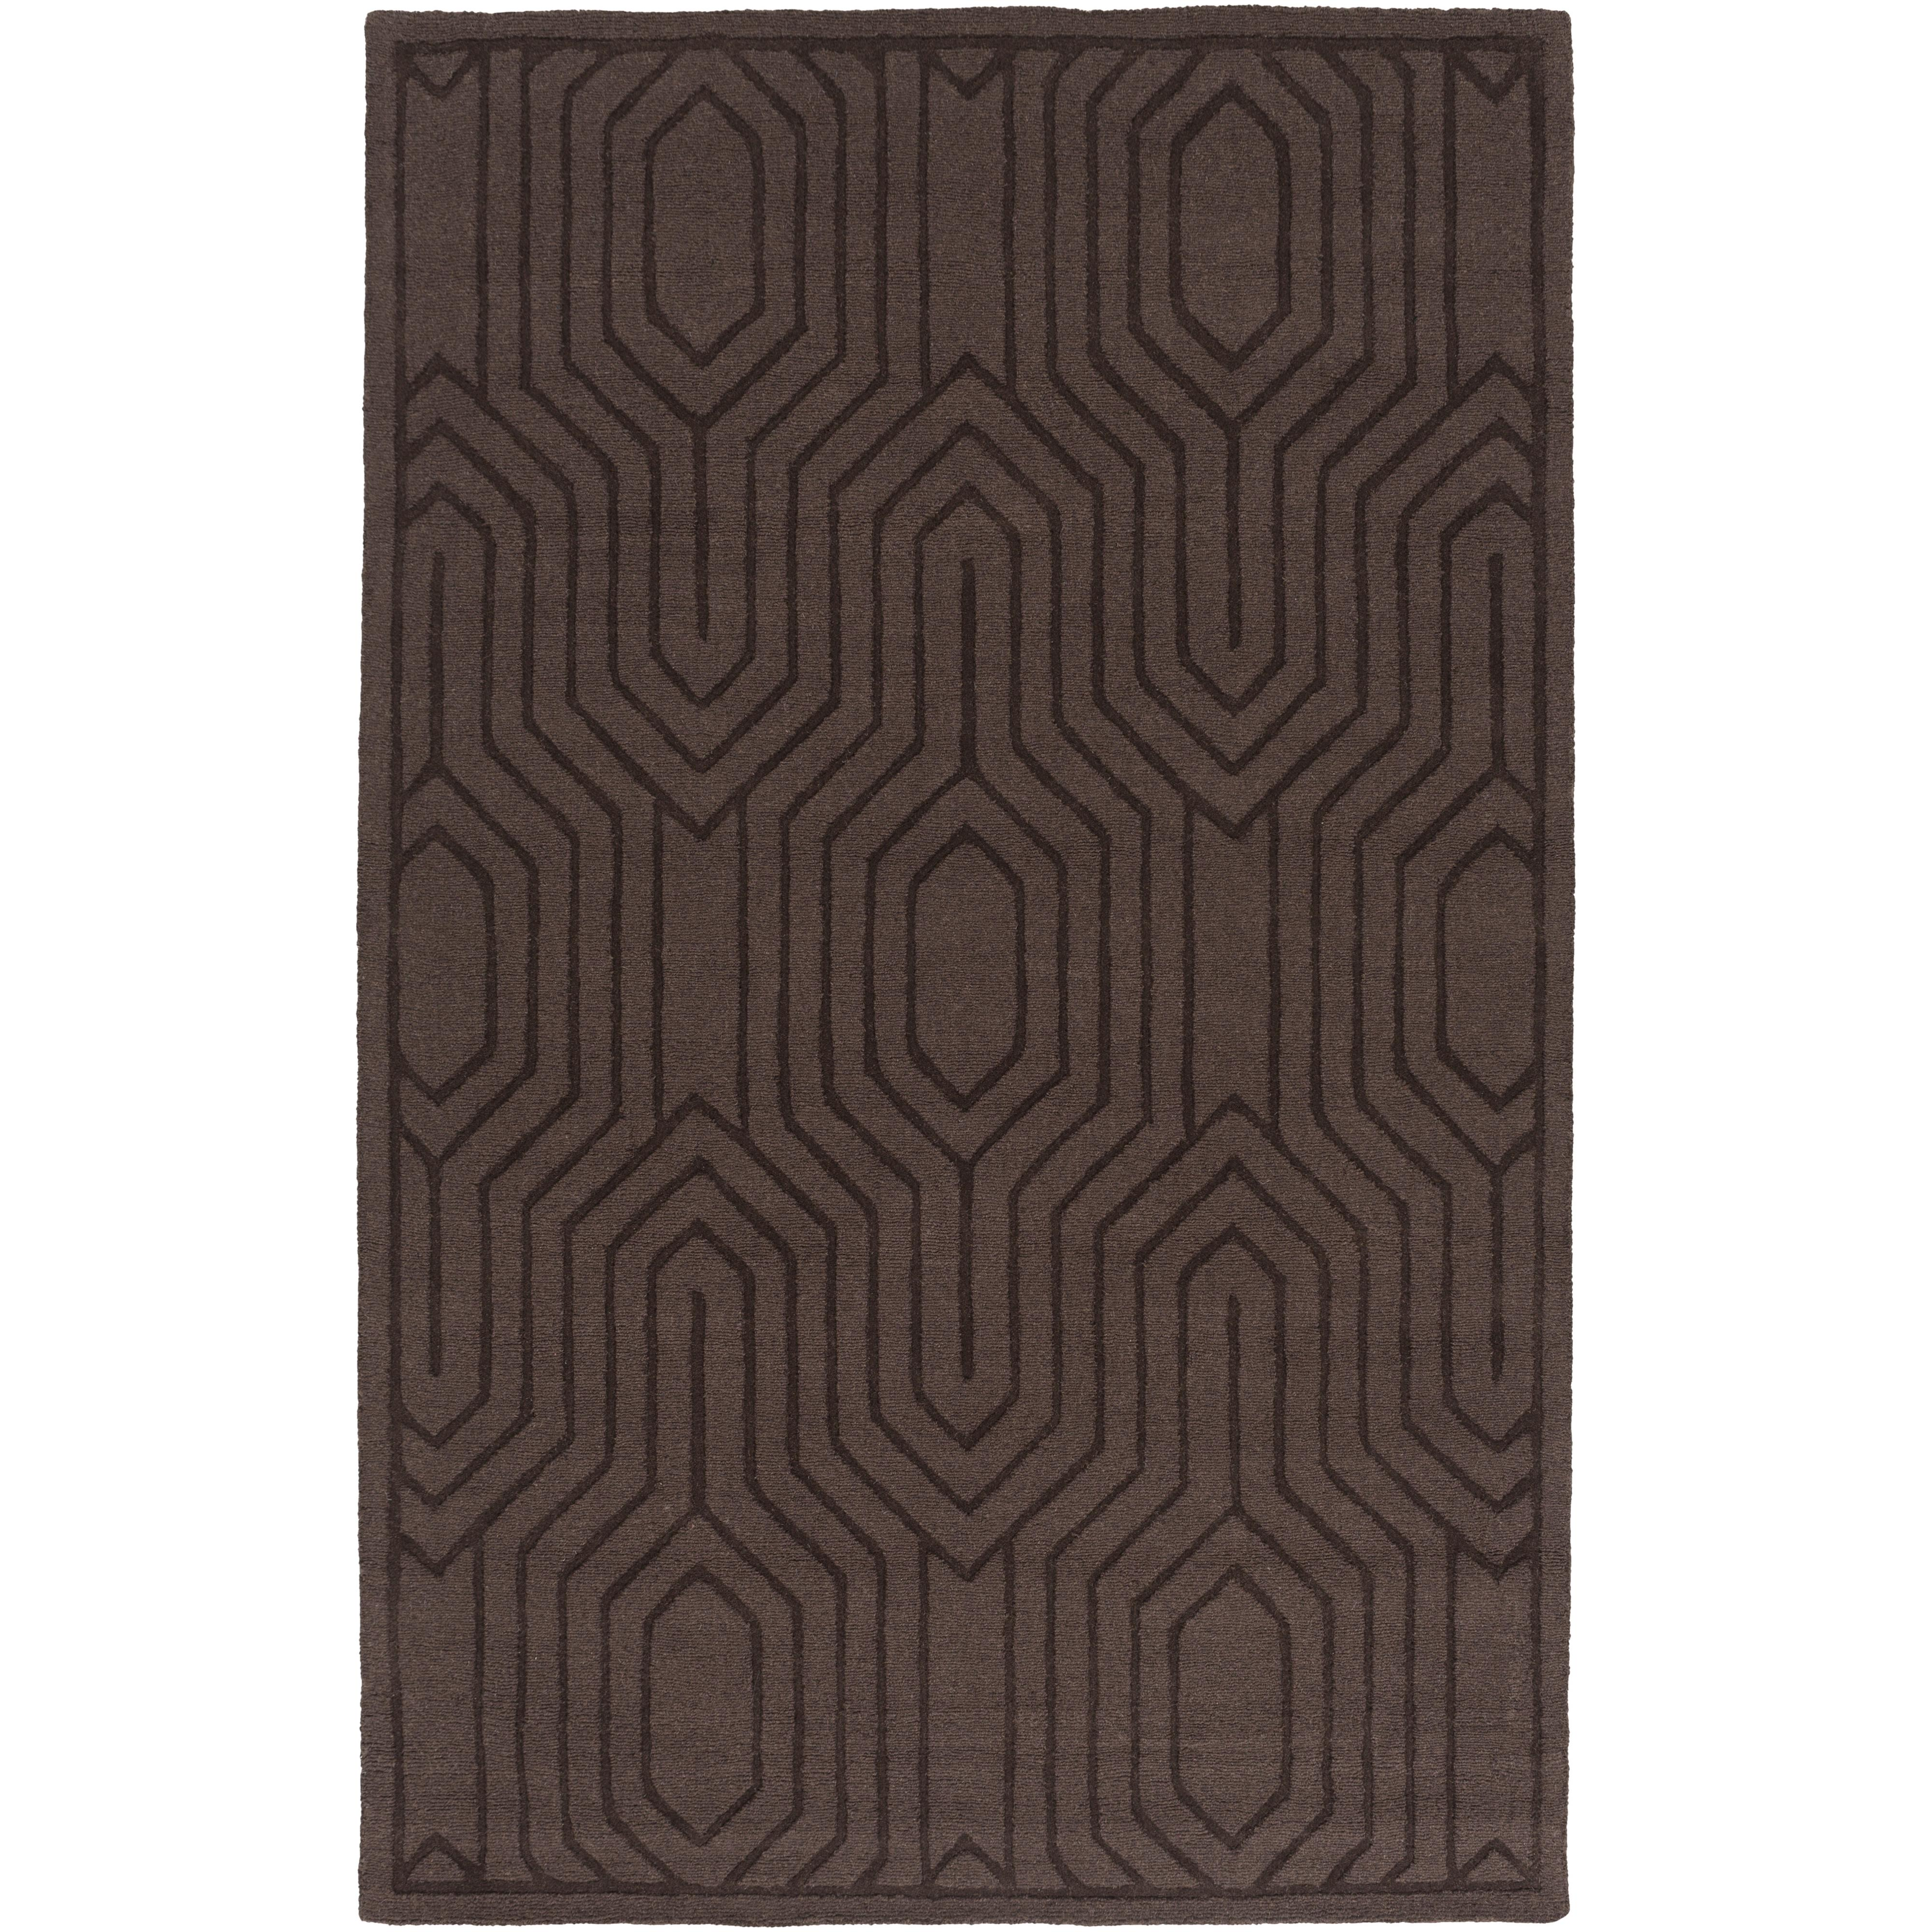 Surya Rugs Mystique 2' x 3' - Item Number: M5367-23